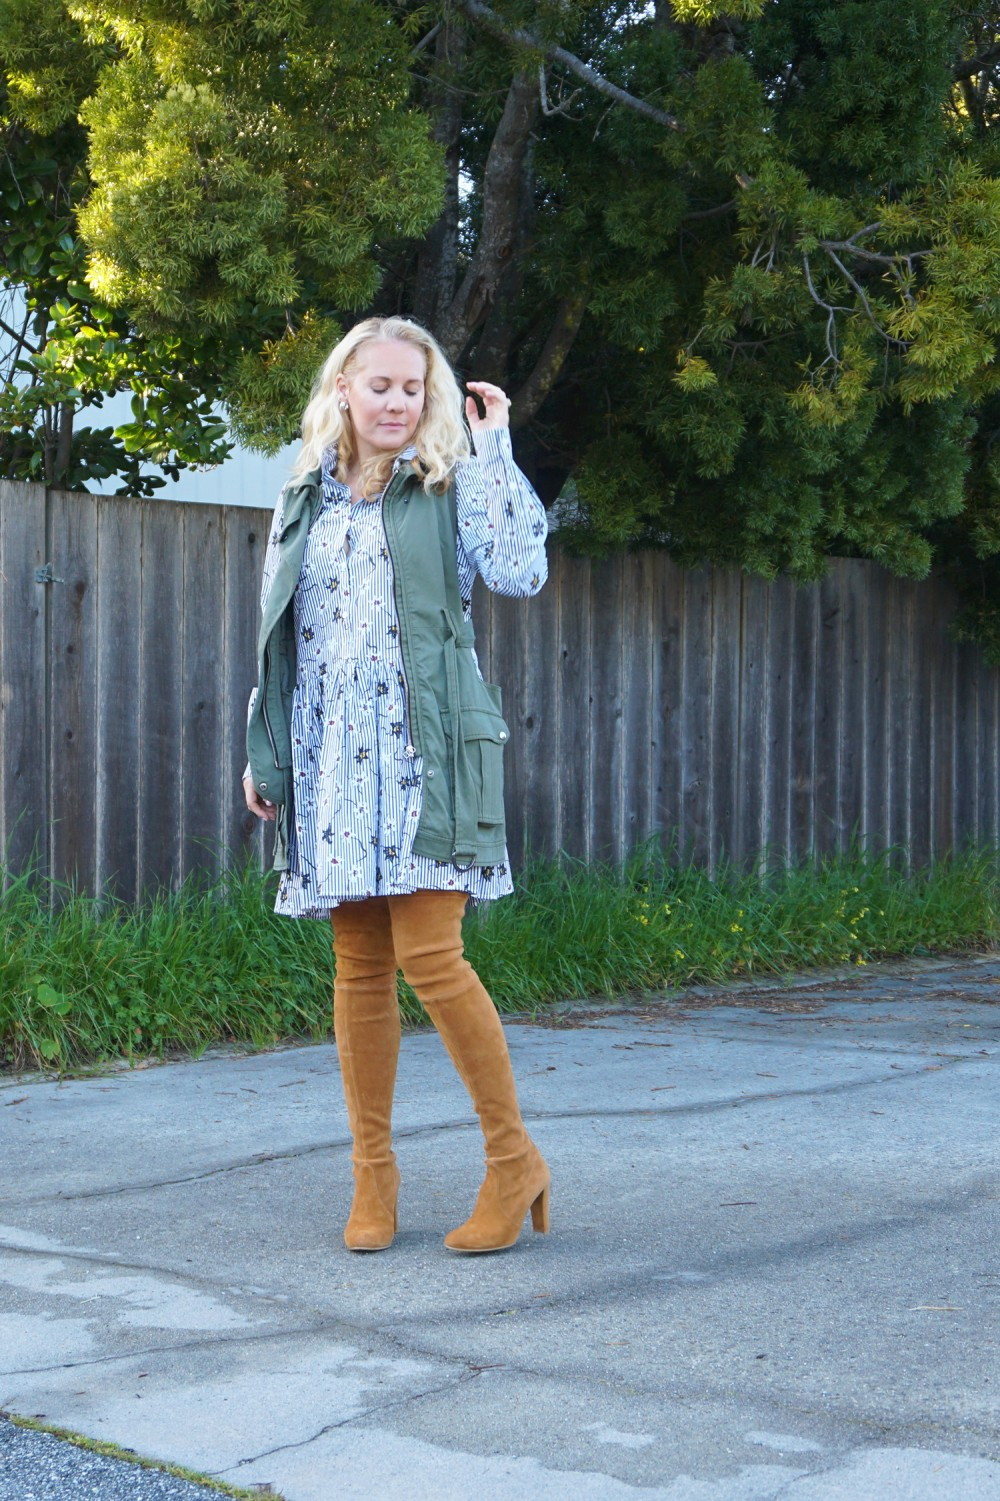 Opening Ceremony Pinstripe and Floral Shirtdress-Spring Style-Outfit Inspiration-Bay Area Fashion Blogger-Stuart Weitzman-Highland Boots-Have Need Want 13